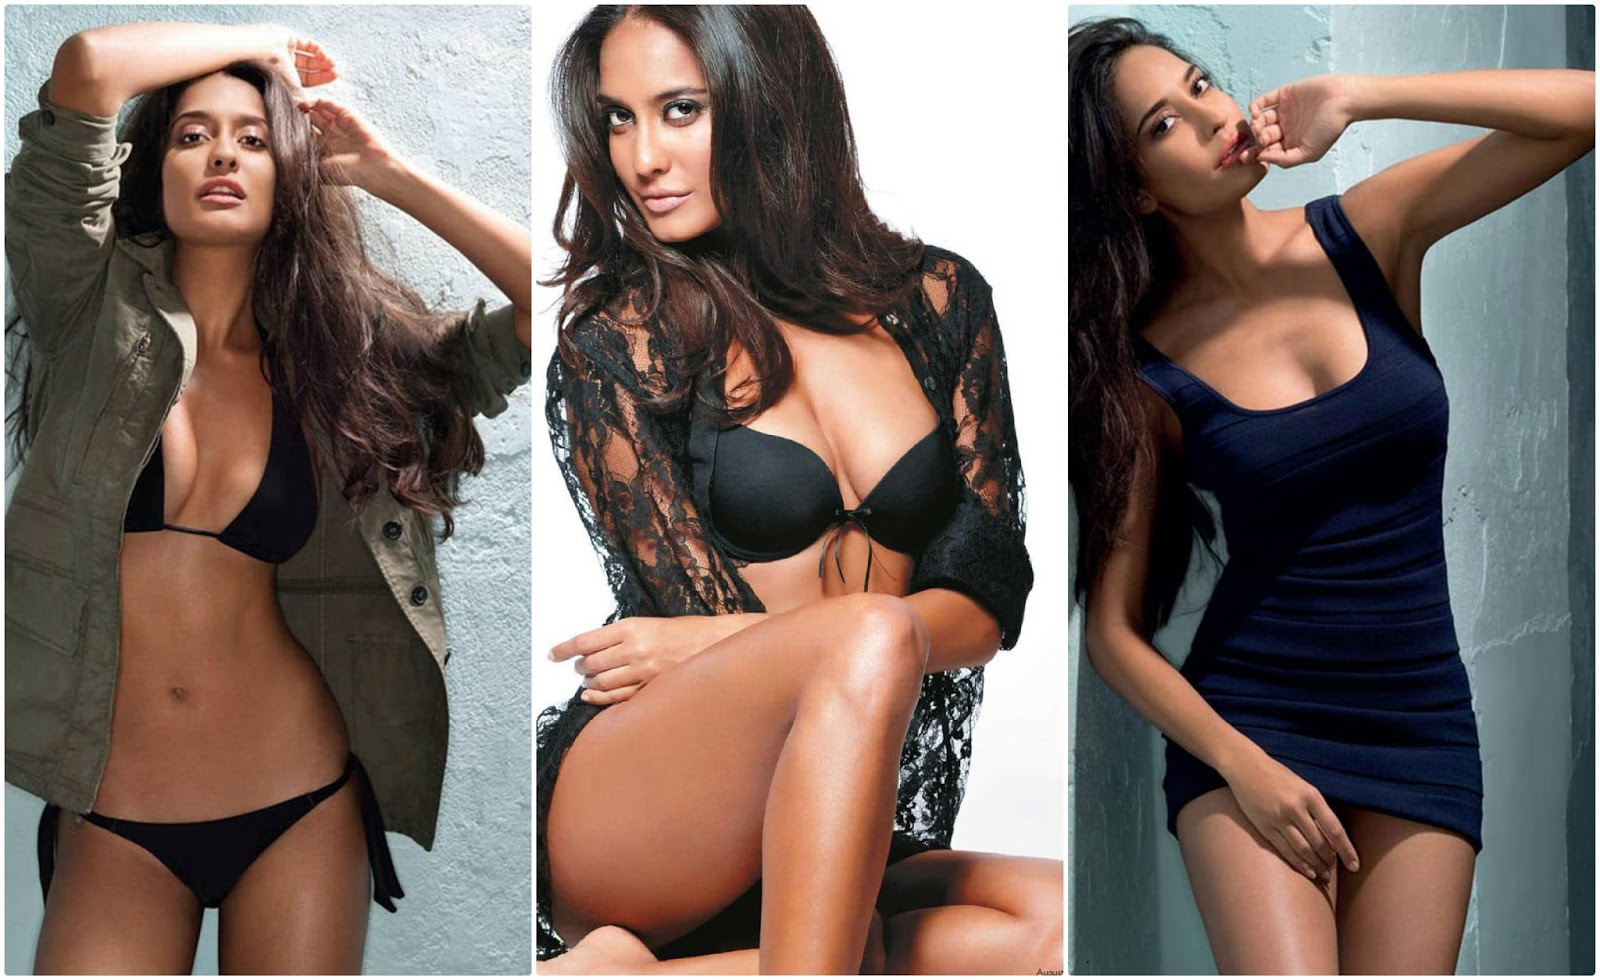 Bollywood Actress sona lisa haydon Hot Sexy Photo Gallery. sona lisa haydon Hot Navel Photos, Bollywood Actress sona lisa haydon Hot Sexy Wallpapers, Bollywood Actress sona lisa haydon Latest Hot Photos, Bollywood Actress sunny leone Spicy Hot Photoshoot Photos, sona lisa haydon Hot Cleavage Hot Images, sona lisa haydon Hot Cleavage Hot Pics, sona lisa haydon Hot Cleavage Hot Pictures, sona lisa haydon Hot Cleavage Hot Stills, sona lisa haydon Hot Images in Saree, sona lisa haydon Hot Navel Images, sona lisa haydon Hot Navel Pics, sunny leone Hot Navel Pictures, sona lisa haydon Hot Navel Stills, sona lisa haydon Hot Photo Gallery in Saree., sona lisa haydon Hot Photo Gallery. Bollywood Actress sona lisa haydon Hot Photos in Saree, sona lisa haydon Hot Photo Gallery. sona lisa haydon Unseen Hot Photos, sona lisa haydon Hot Photoshoot, sona lisa haydon Hot Photoshoot in Saree, sona lisa haydon Hot Pics in Saree, sona lisa haydon Hot Pictures in Saree, sona lisa haydon Hot Sexy Cleavage Show Images, sunny leone Hot Sexy Cleavage Show Stills, sona lisa haydon Hot Spicy Cleavage Show Pics, sona lisa haydon Hot Spicy Cleavage Show Pictures, sona lisa haydon Hot Stills in Saree, sona lisa haydon Hot Wallpapers, sona lisa haydon Hot Wallpapers in Saree, sona lisa haydon Latest Hot Cleavage Images, sona lisa haydon Latest Hot Cleavage Pics, sona lisa haydon Latest Hot Cleavage Pictures, sona lisa haydon Latest Hot Cleavage Stills, sona lisa haydon Latest Hot Images, sona lisa haydon Latest Hot Navel Show Images, sona lisa haydon Latest Hot Navel Show Pics, sona lisa haydon Latest Hot Navel Show Pictures, sona lisa haydon Latest Hot Navel Show Stills, sona lisa haydon Latest Hot Photo Gallery. Bollywood Actress sona lisa haydon Latest Hot Navel Show Photos, sona lisa haydon Latest Hot Photo Gallery. sona lisa haydon Hot Cleavage Photos, sona lisa haydon Latest Hot Photo Gallery. sona lisa haydon Latest Hot Cleavage Photos, sona lisa haydon Latest Hot Photoshoot, sona lisa haydon Latest Hot Photoshoot Photos, sona lisa haydon Latest Hot Pics, sona lisa haydon Latest Hot Pictures, sona lisa haydon Latest Hot Stills, sona lisa haydon Latest Hot Wallpapers, sona lisa haydon Unseen Hot Images, sona lisa haydon Unseen Hot Photo Gallery. Bollywood Actress sona lisa haydon Hot Sexy Cleavage Photos, sona lisa haydon Unseen Hot Photoshoot, sona lisa haydon Unseen Hot Pics, sona lisa haydon Unseen Hot Pictures, sona lisa haydon Unseen Hot Stills, sona lisa haydon Unseen Hot Wallpapers